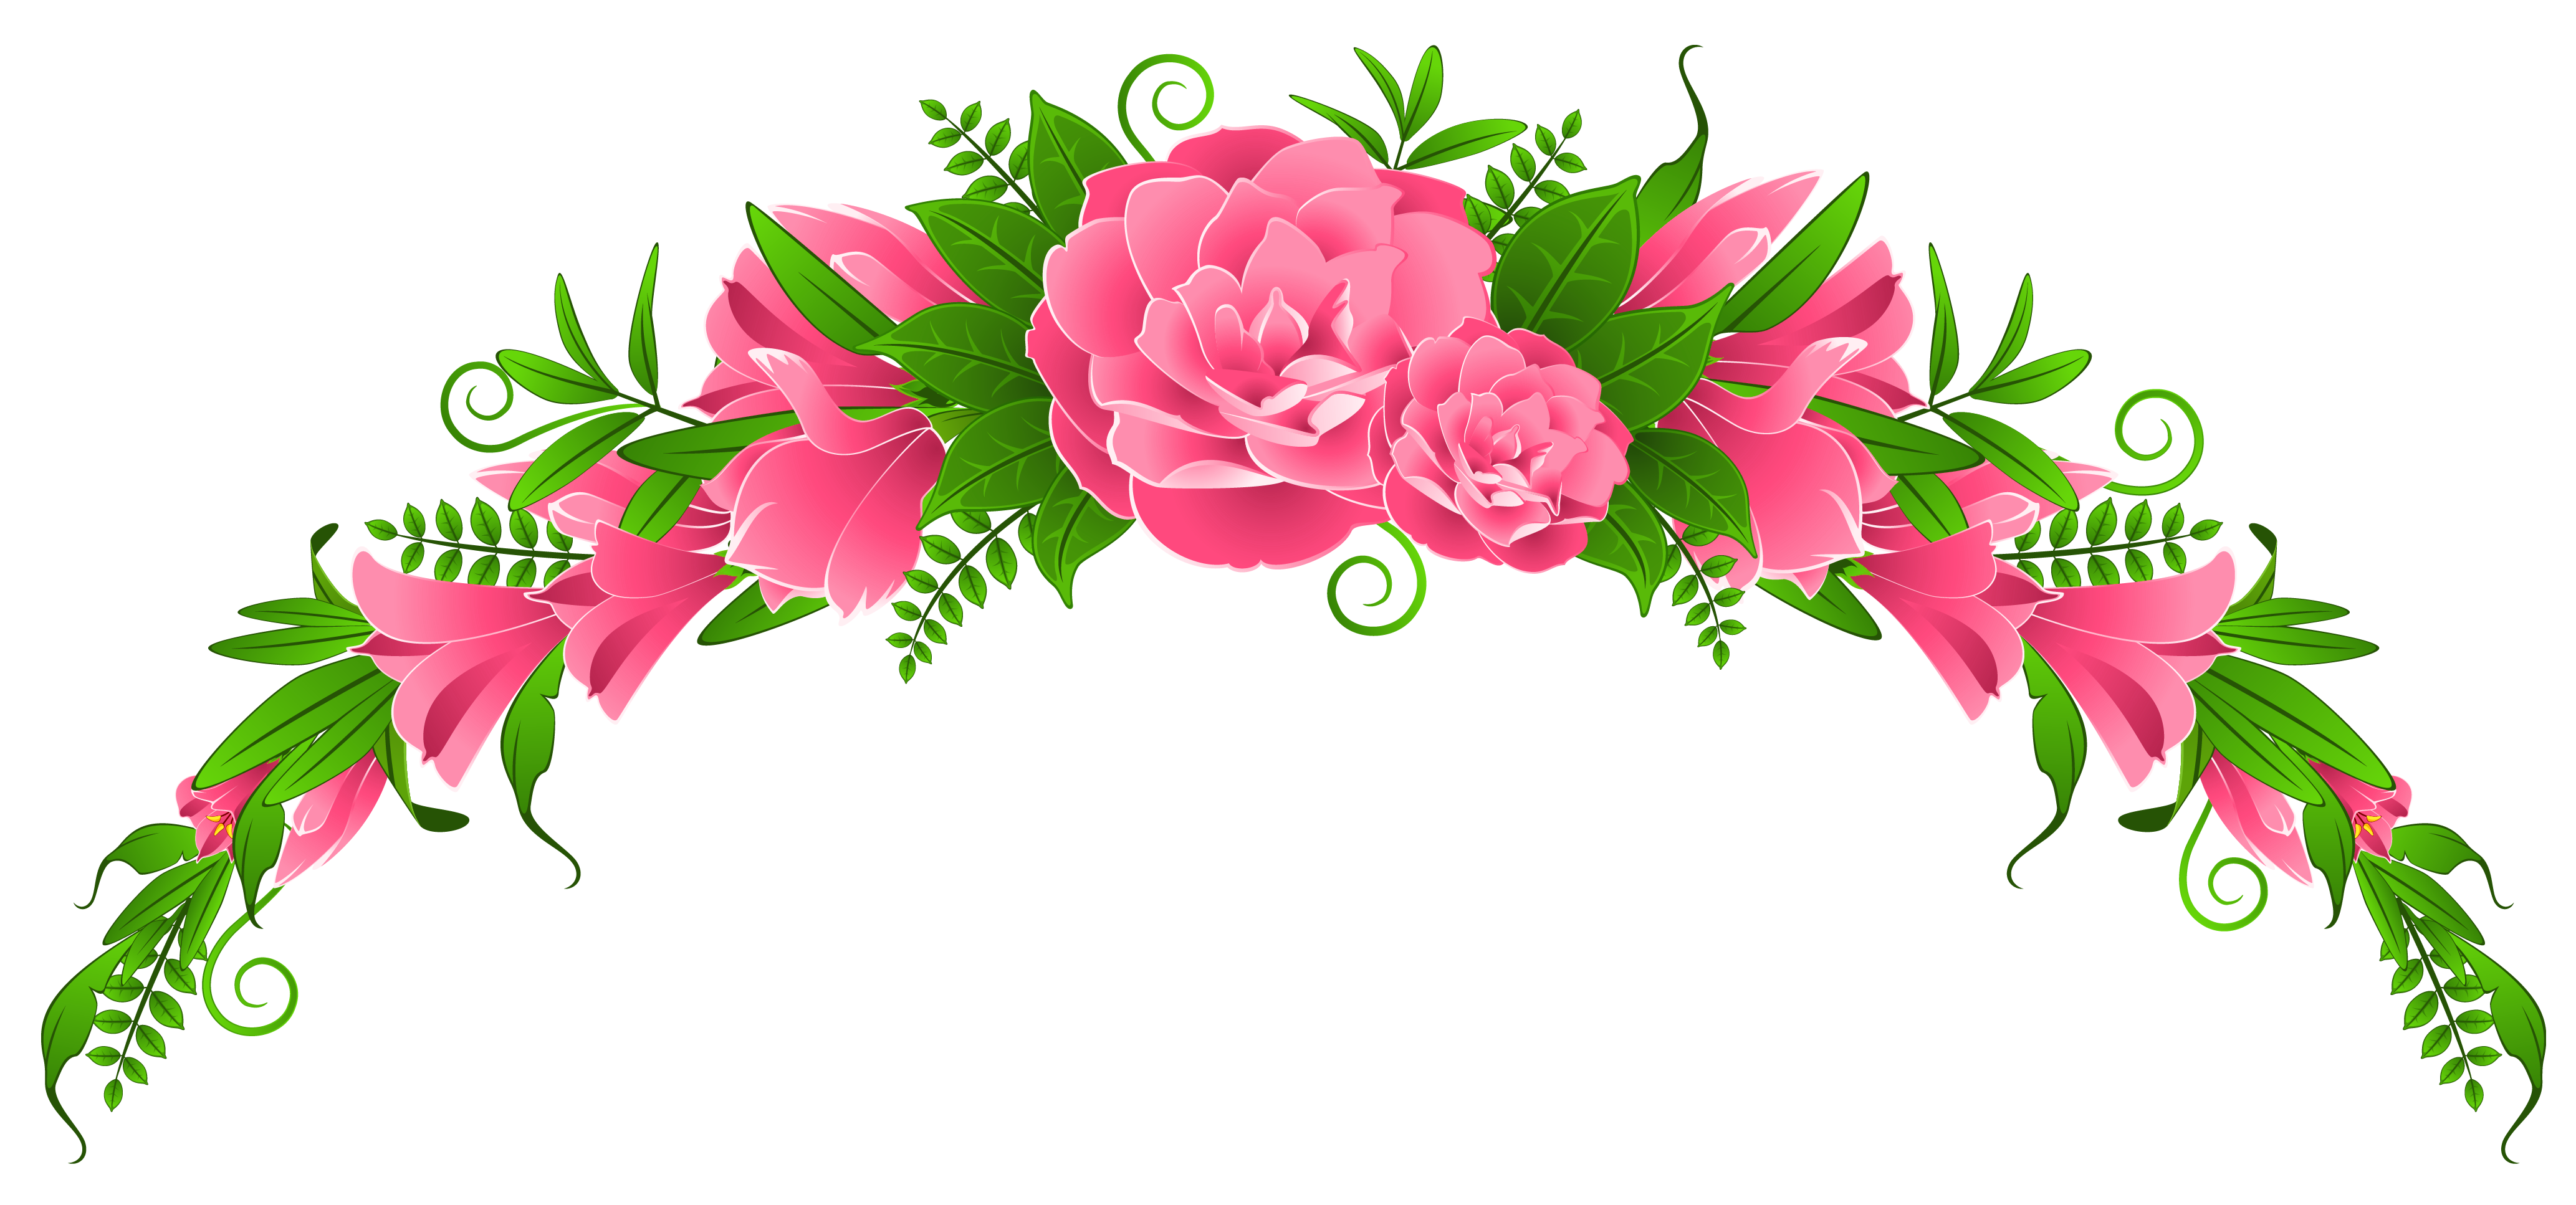 Pink flowers and roses. Peony clipart floral arch